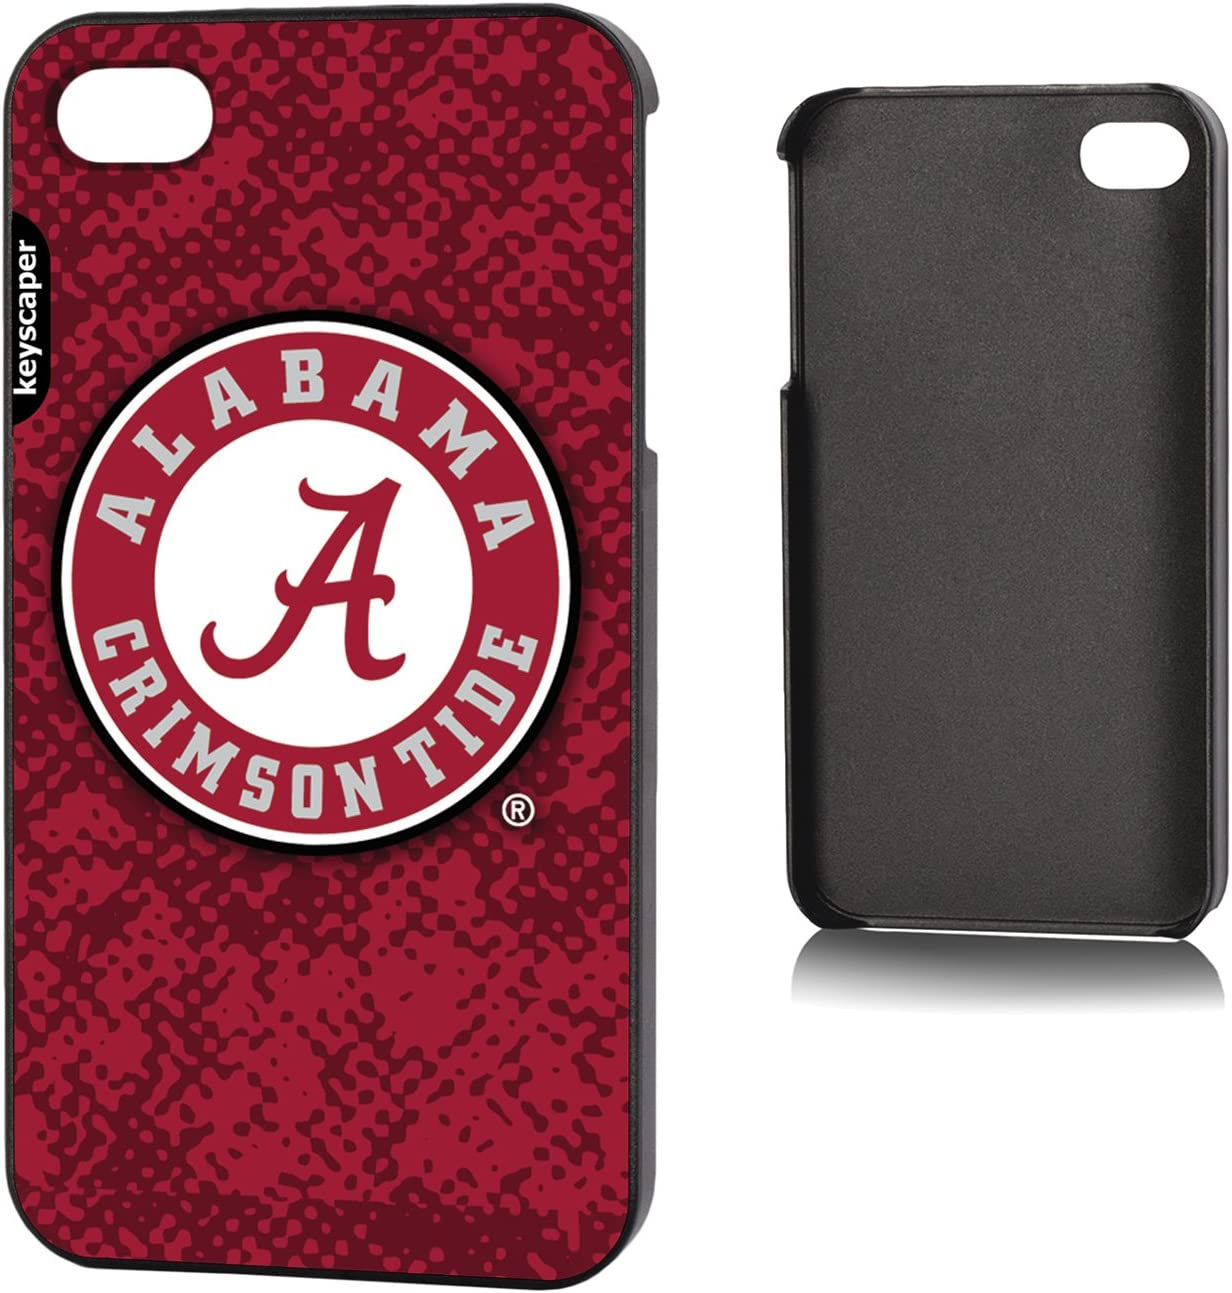 B005UQSPXI NCAA Alabama Crimson Tide iphone 4/4S Case 71RQNpVHxoL